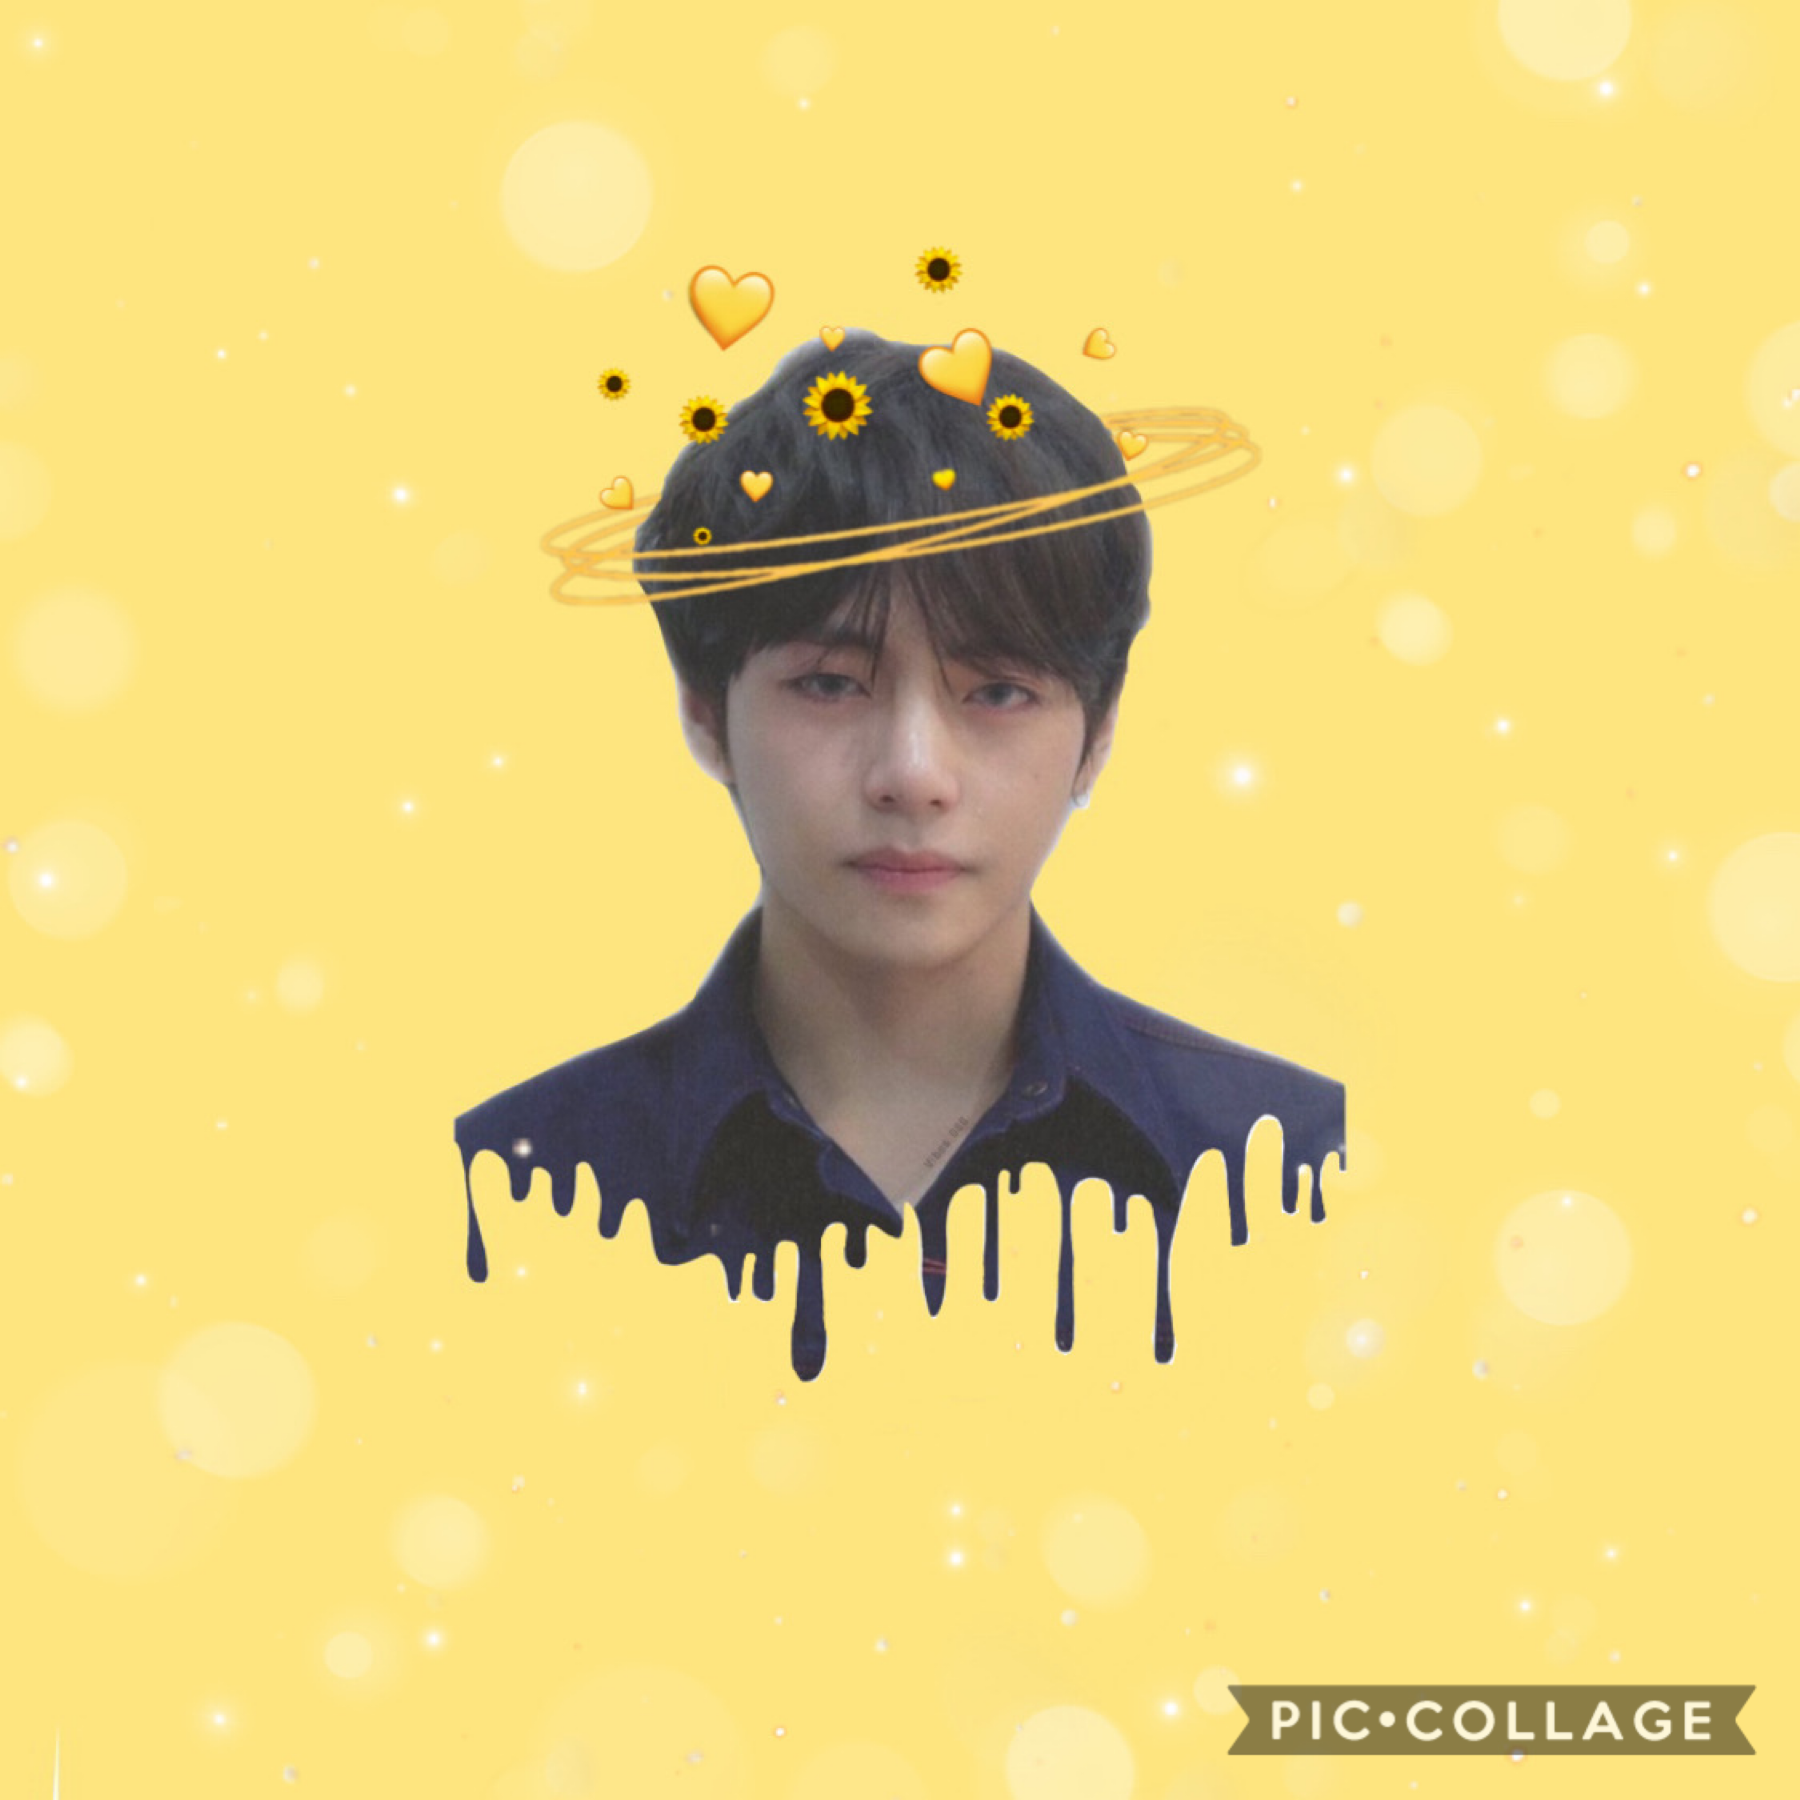 ~💛~ Hey everyone, I know this is only a simple edit but it was fun trying something new. I'm excited to try and hopefully show you a completely different style soon. I hope your all well 💜